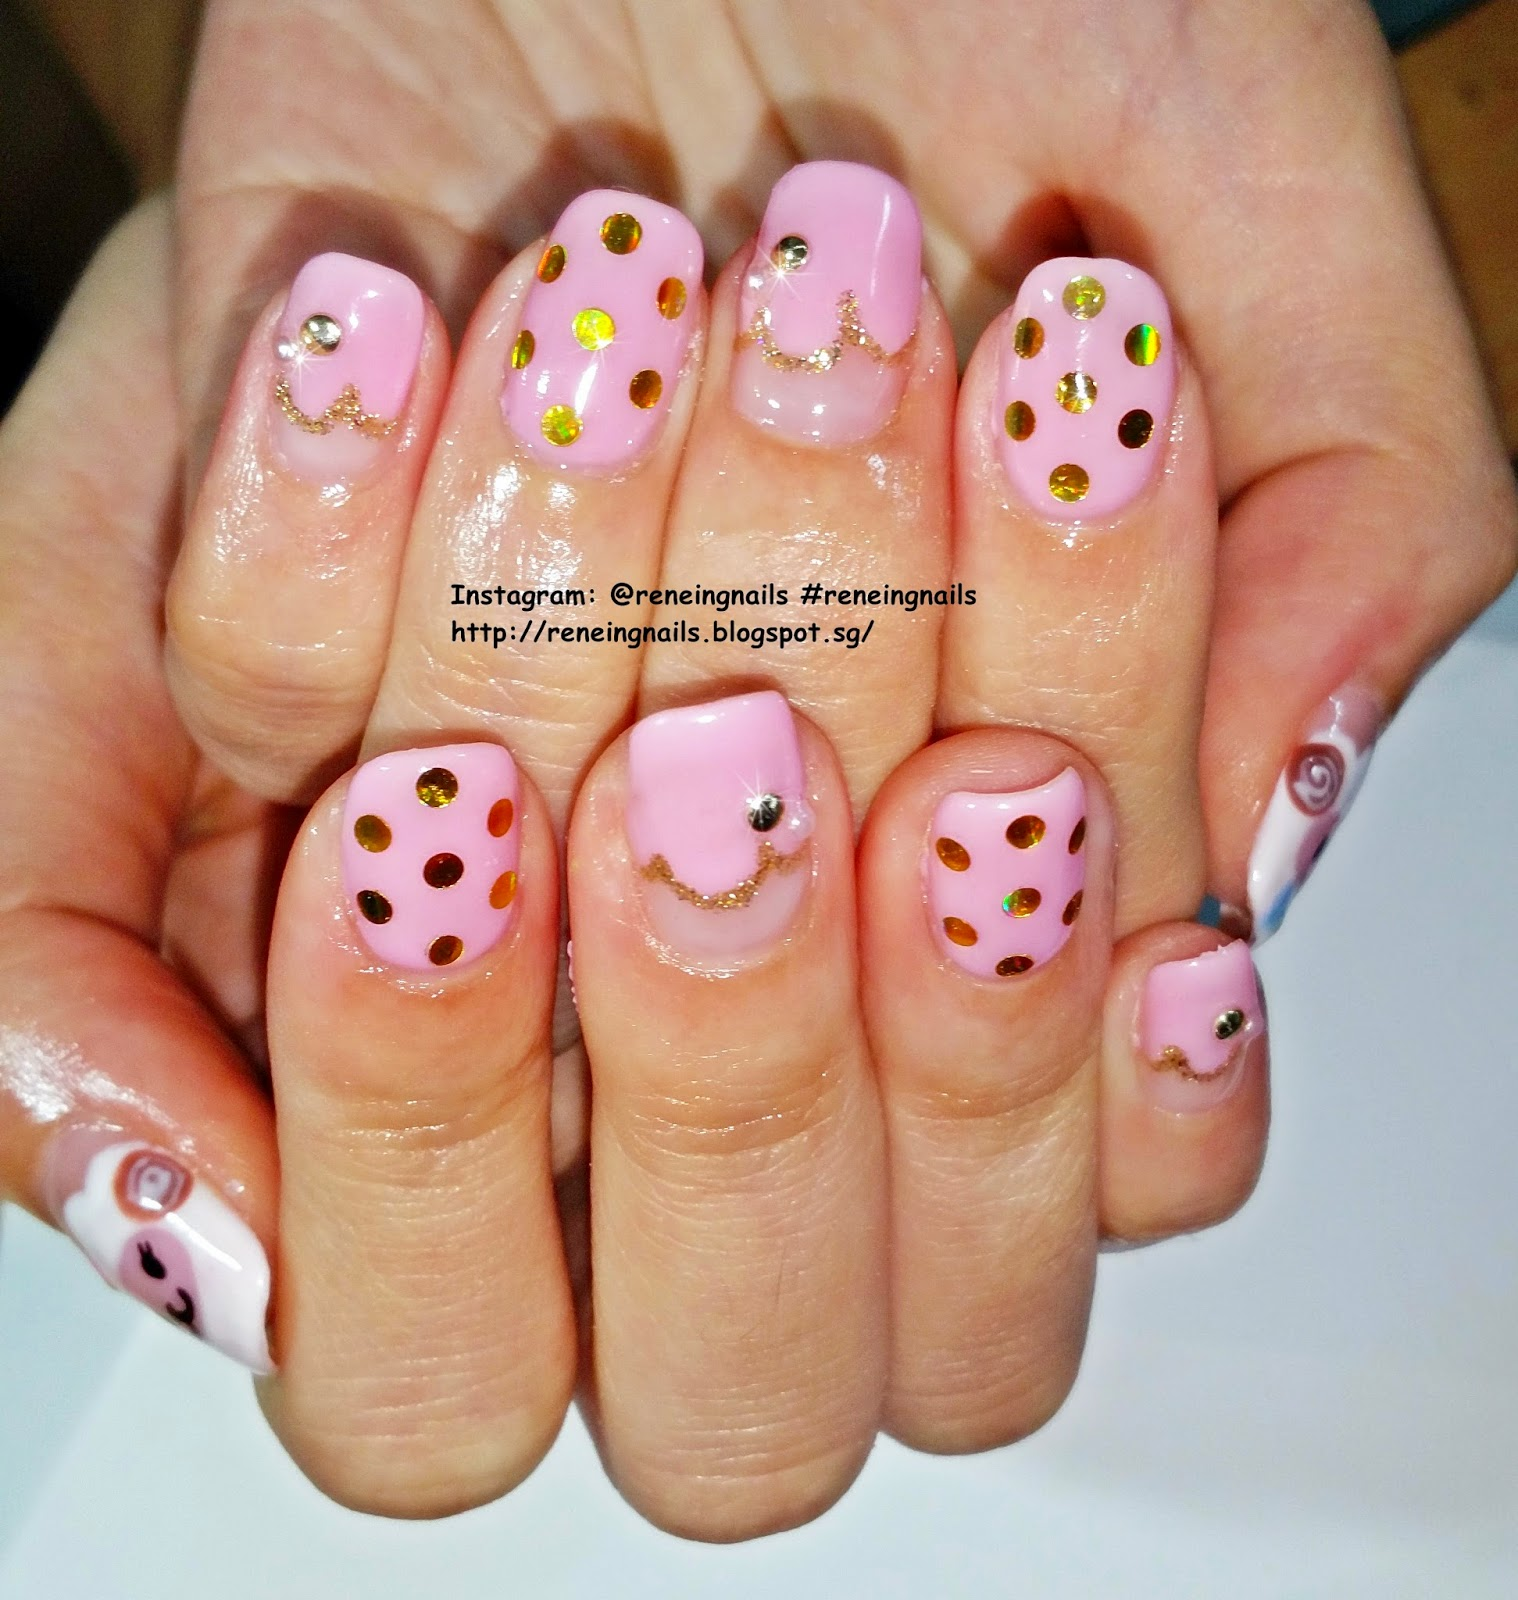 Reneing.Nails: N31460: Chinese new year 2015 nails for Kelly!